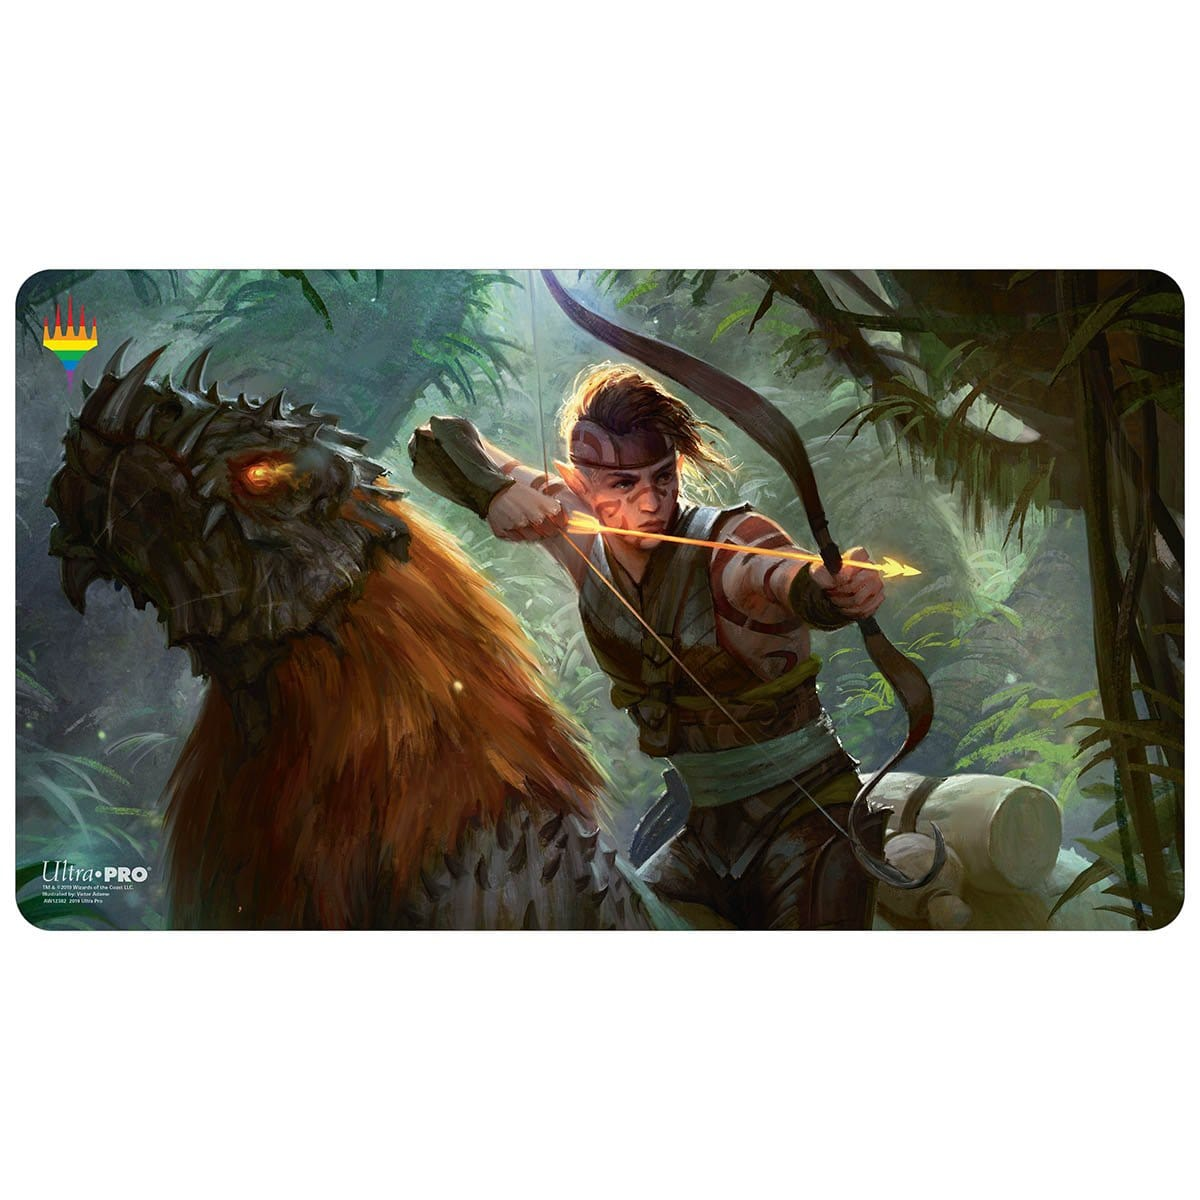 Hallar, the Firefletcher Playmat - Pride 2019